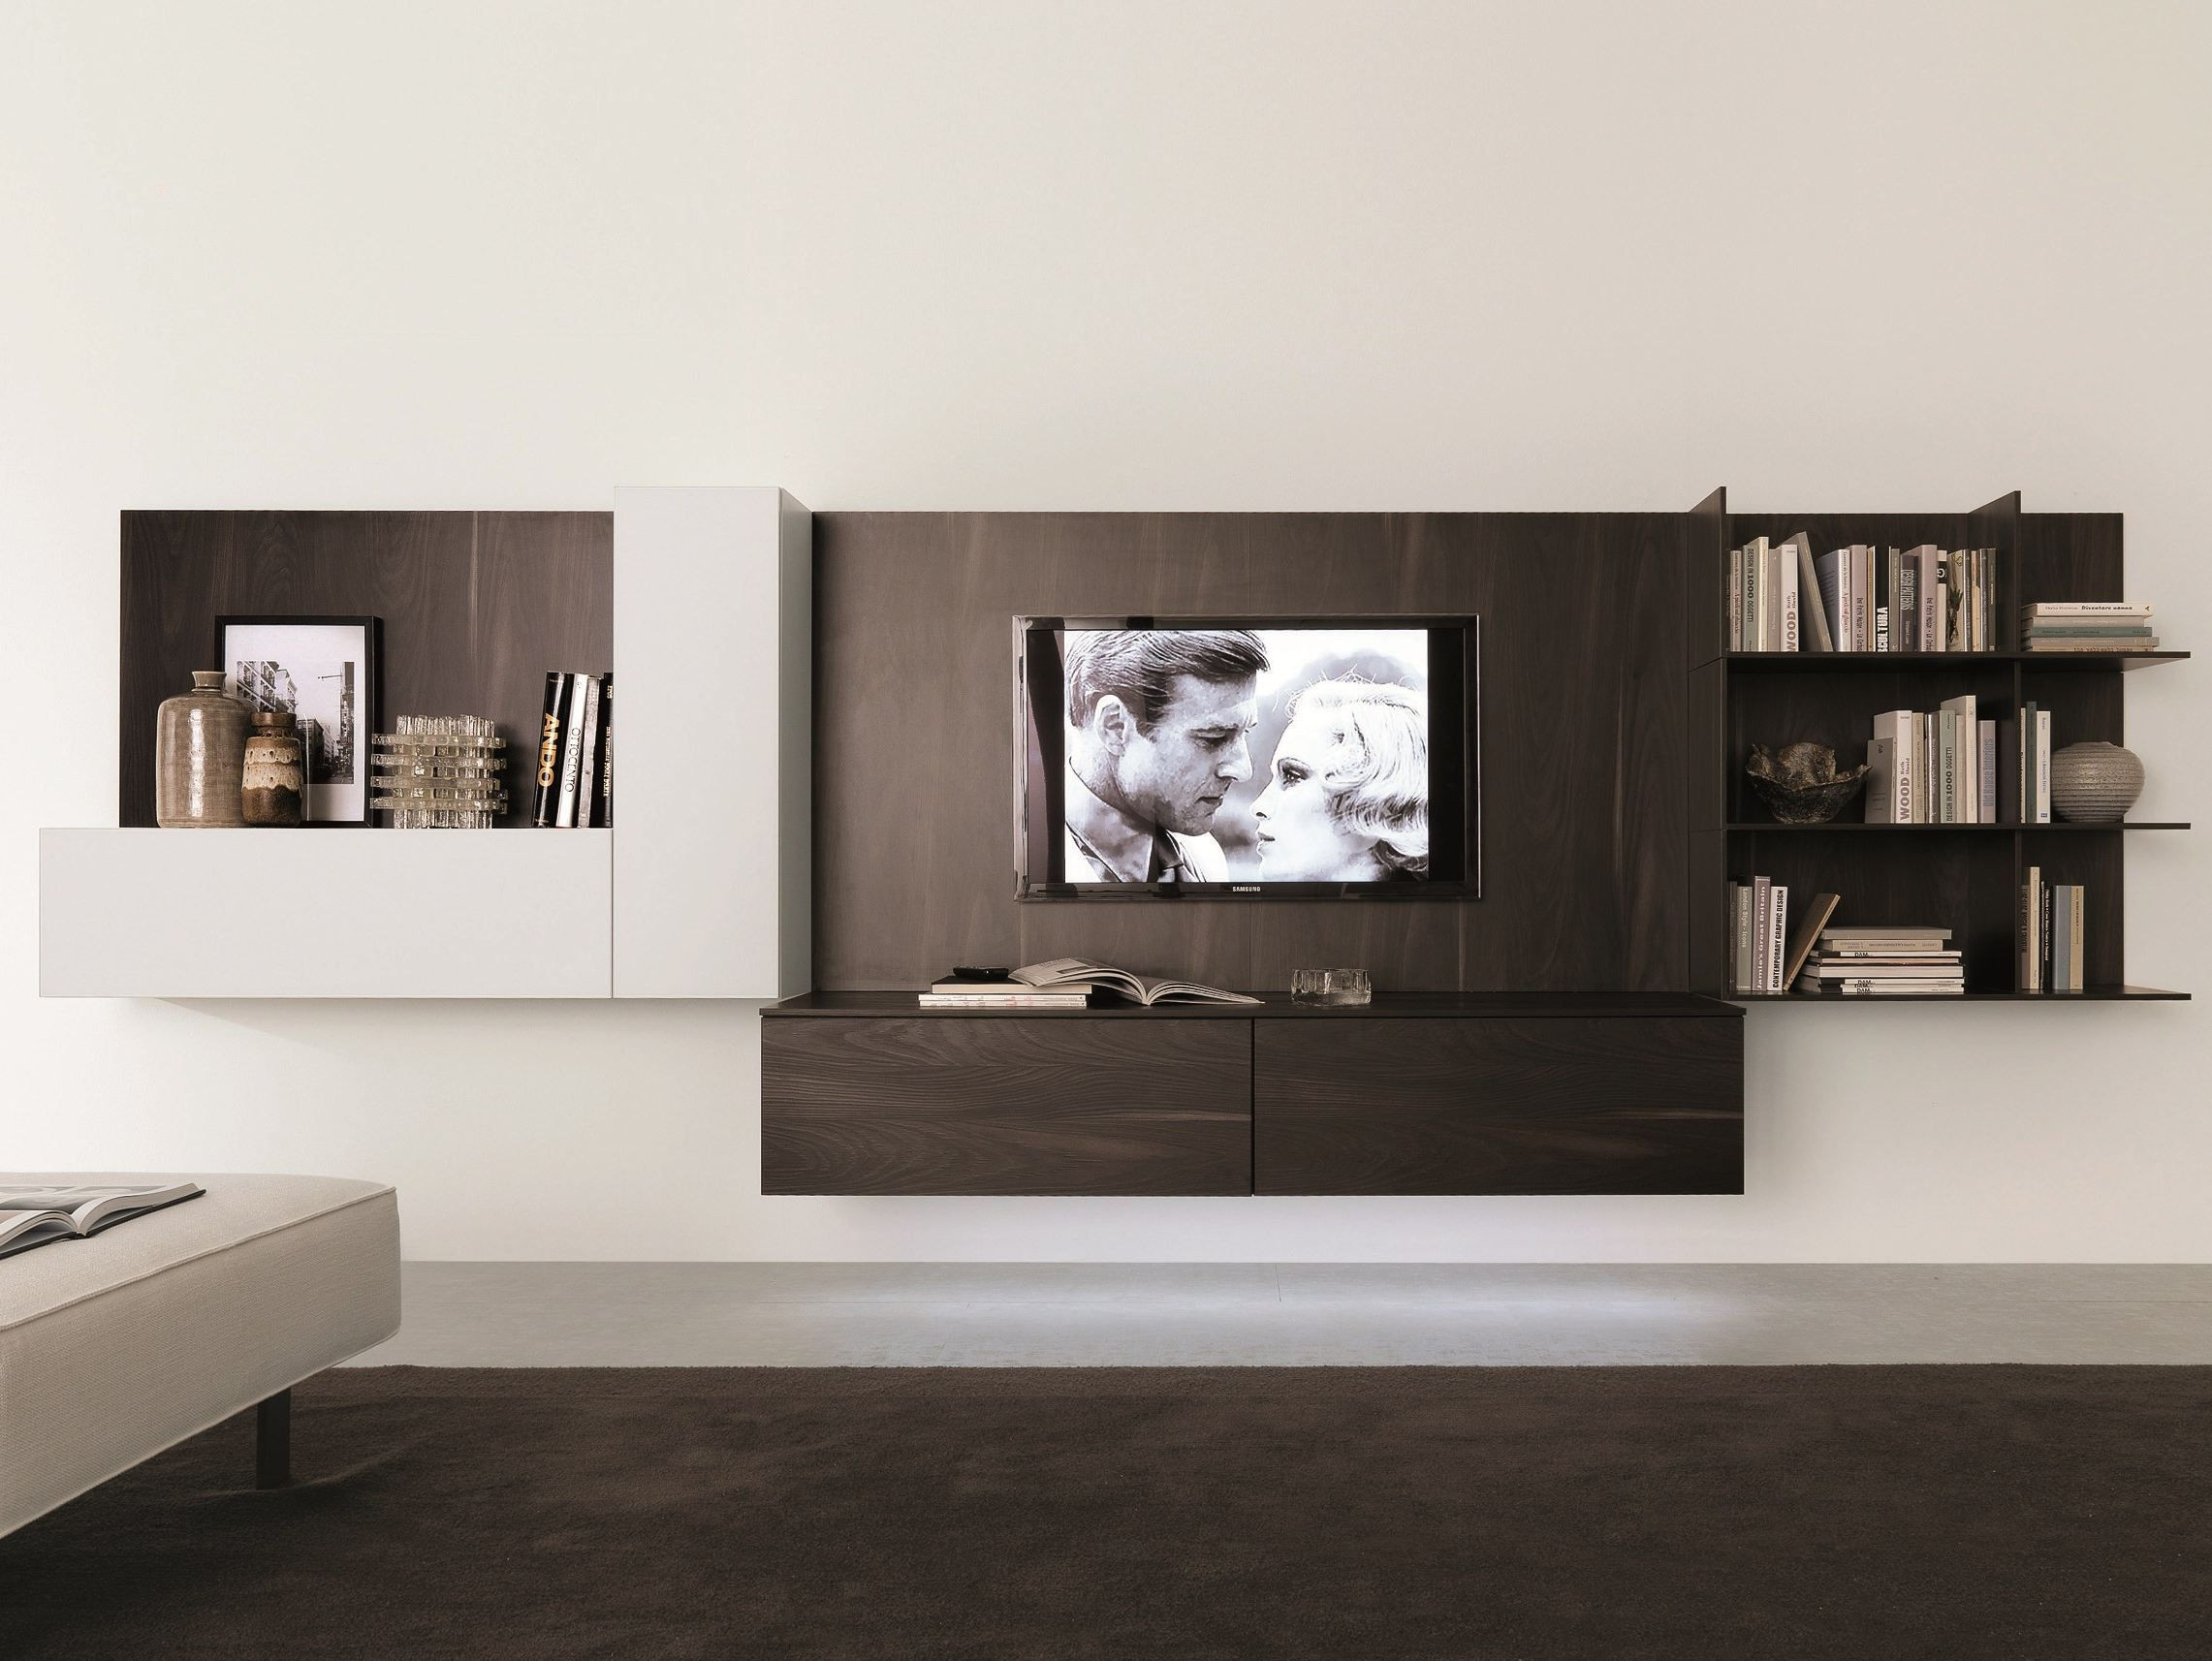 Muebles Para Tv Modernos Gran Muebles Modernos Para Tv Y Equipo De sonido Of Muebles Para Tv Modernos Adorable Decore On Pinterest